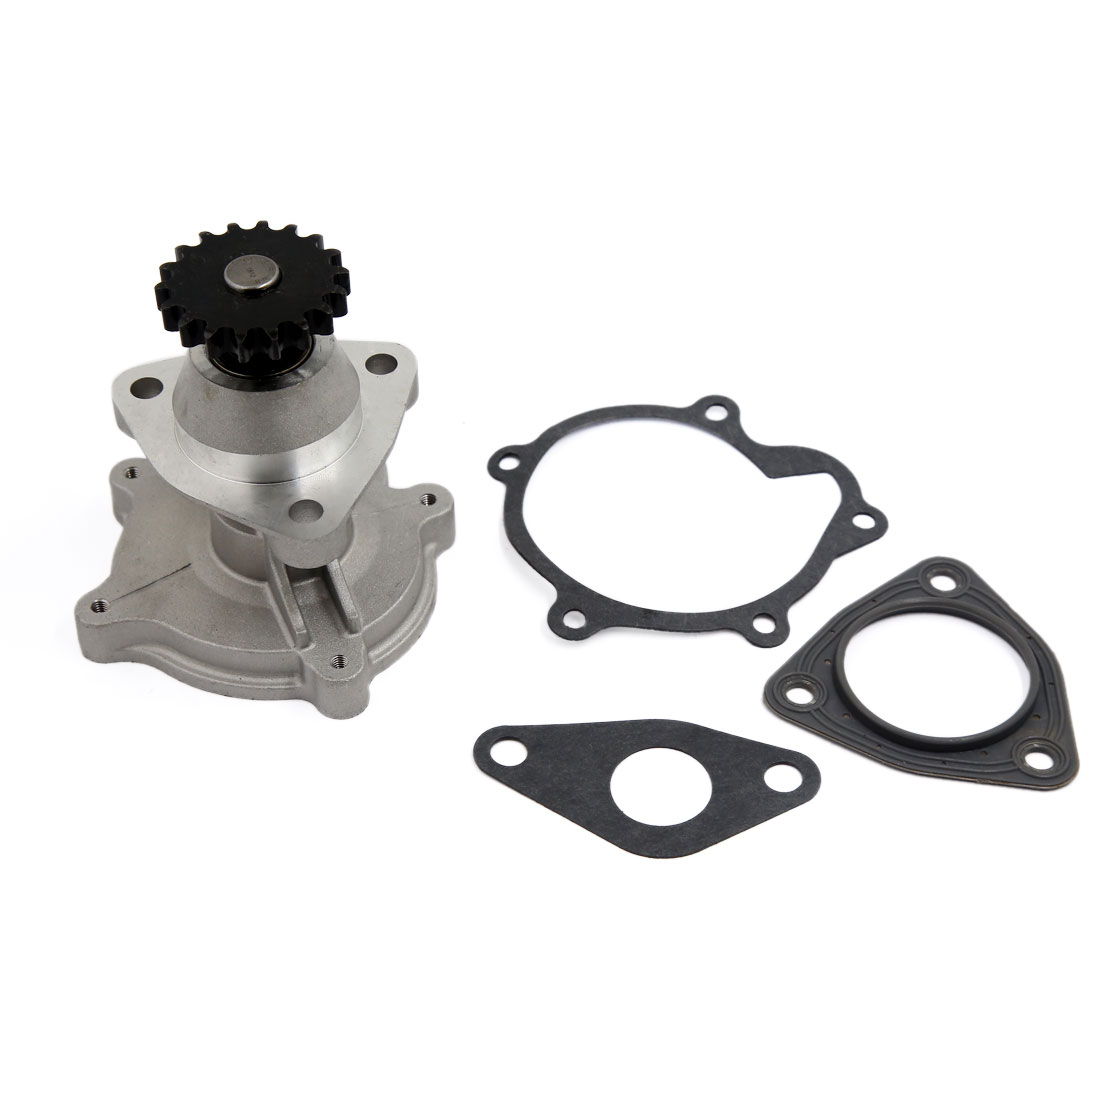 New Water Pump W/ Gasket For Buick Chevrolet Oldsmobile Pontiac 2.4L P1292